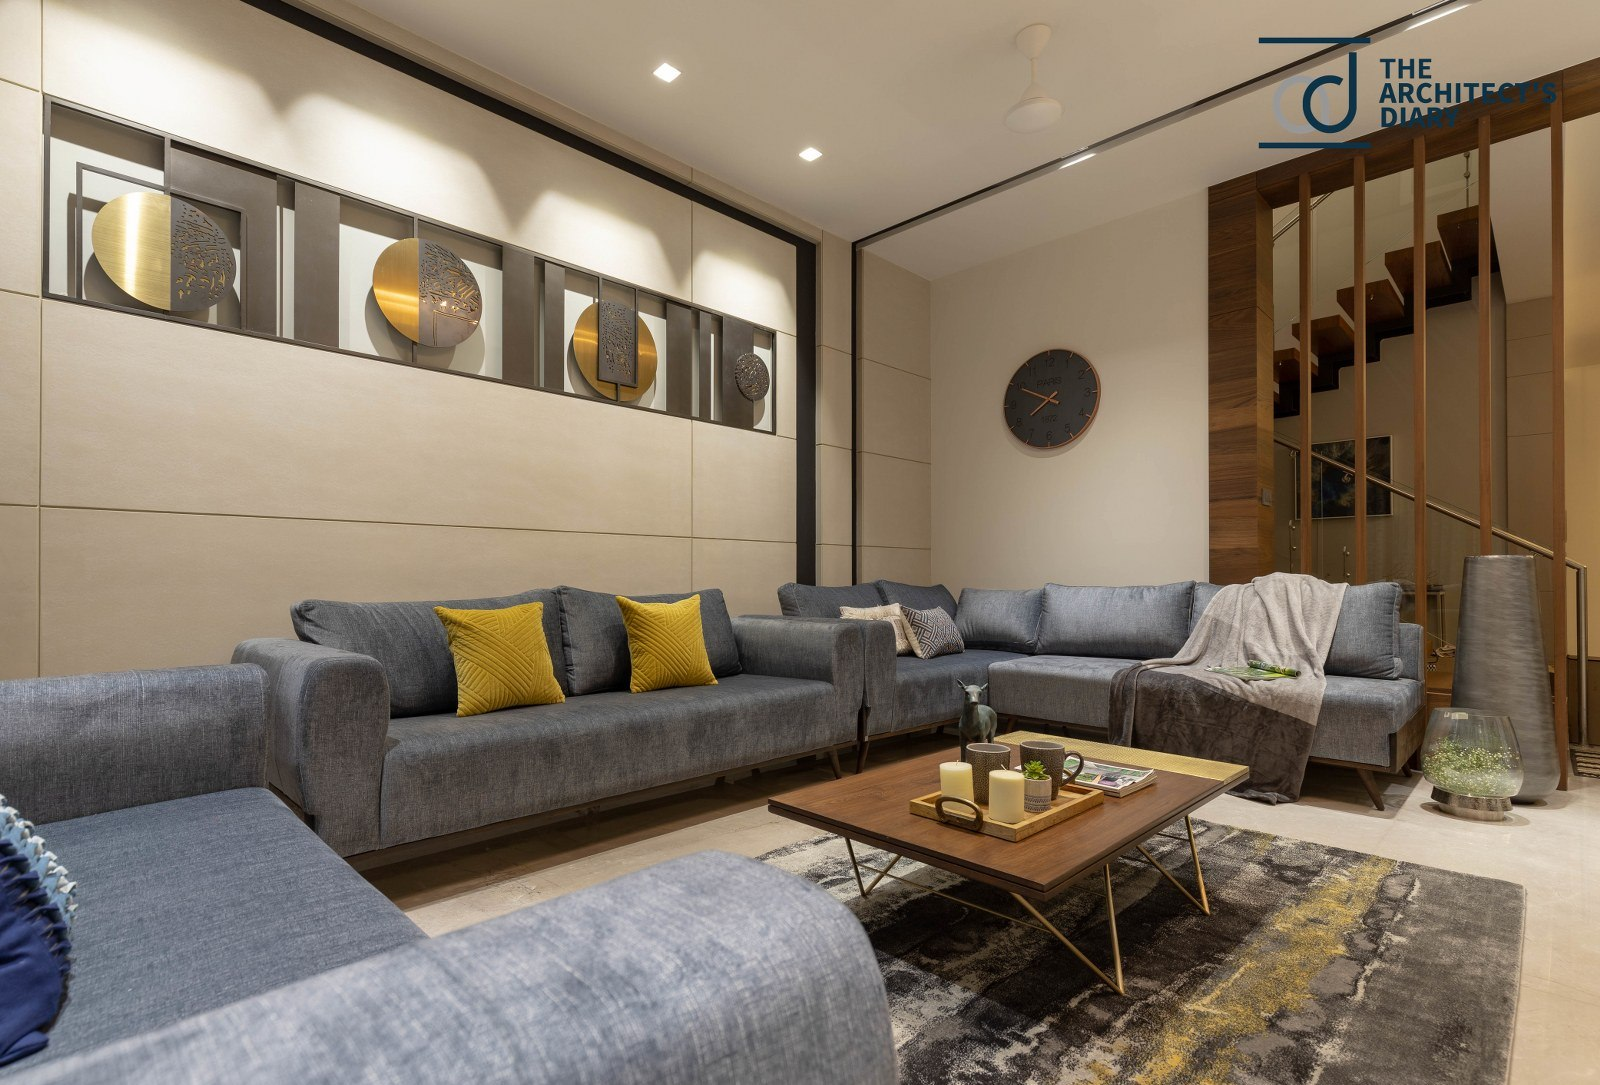 House Interior With Lavish Mix Of Textures Crest Architects Interior The Architects Diary